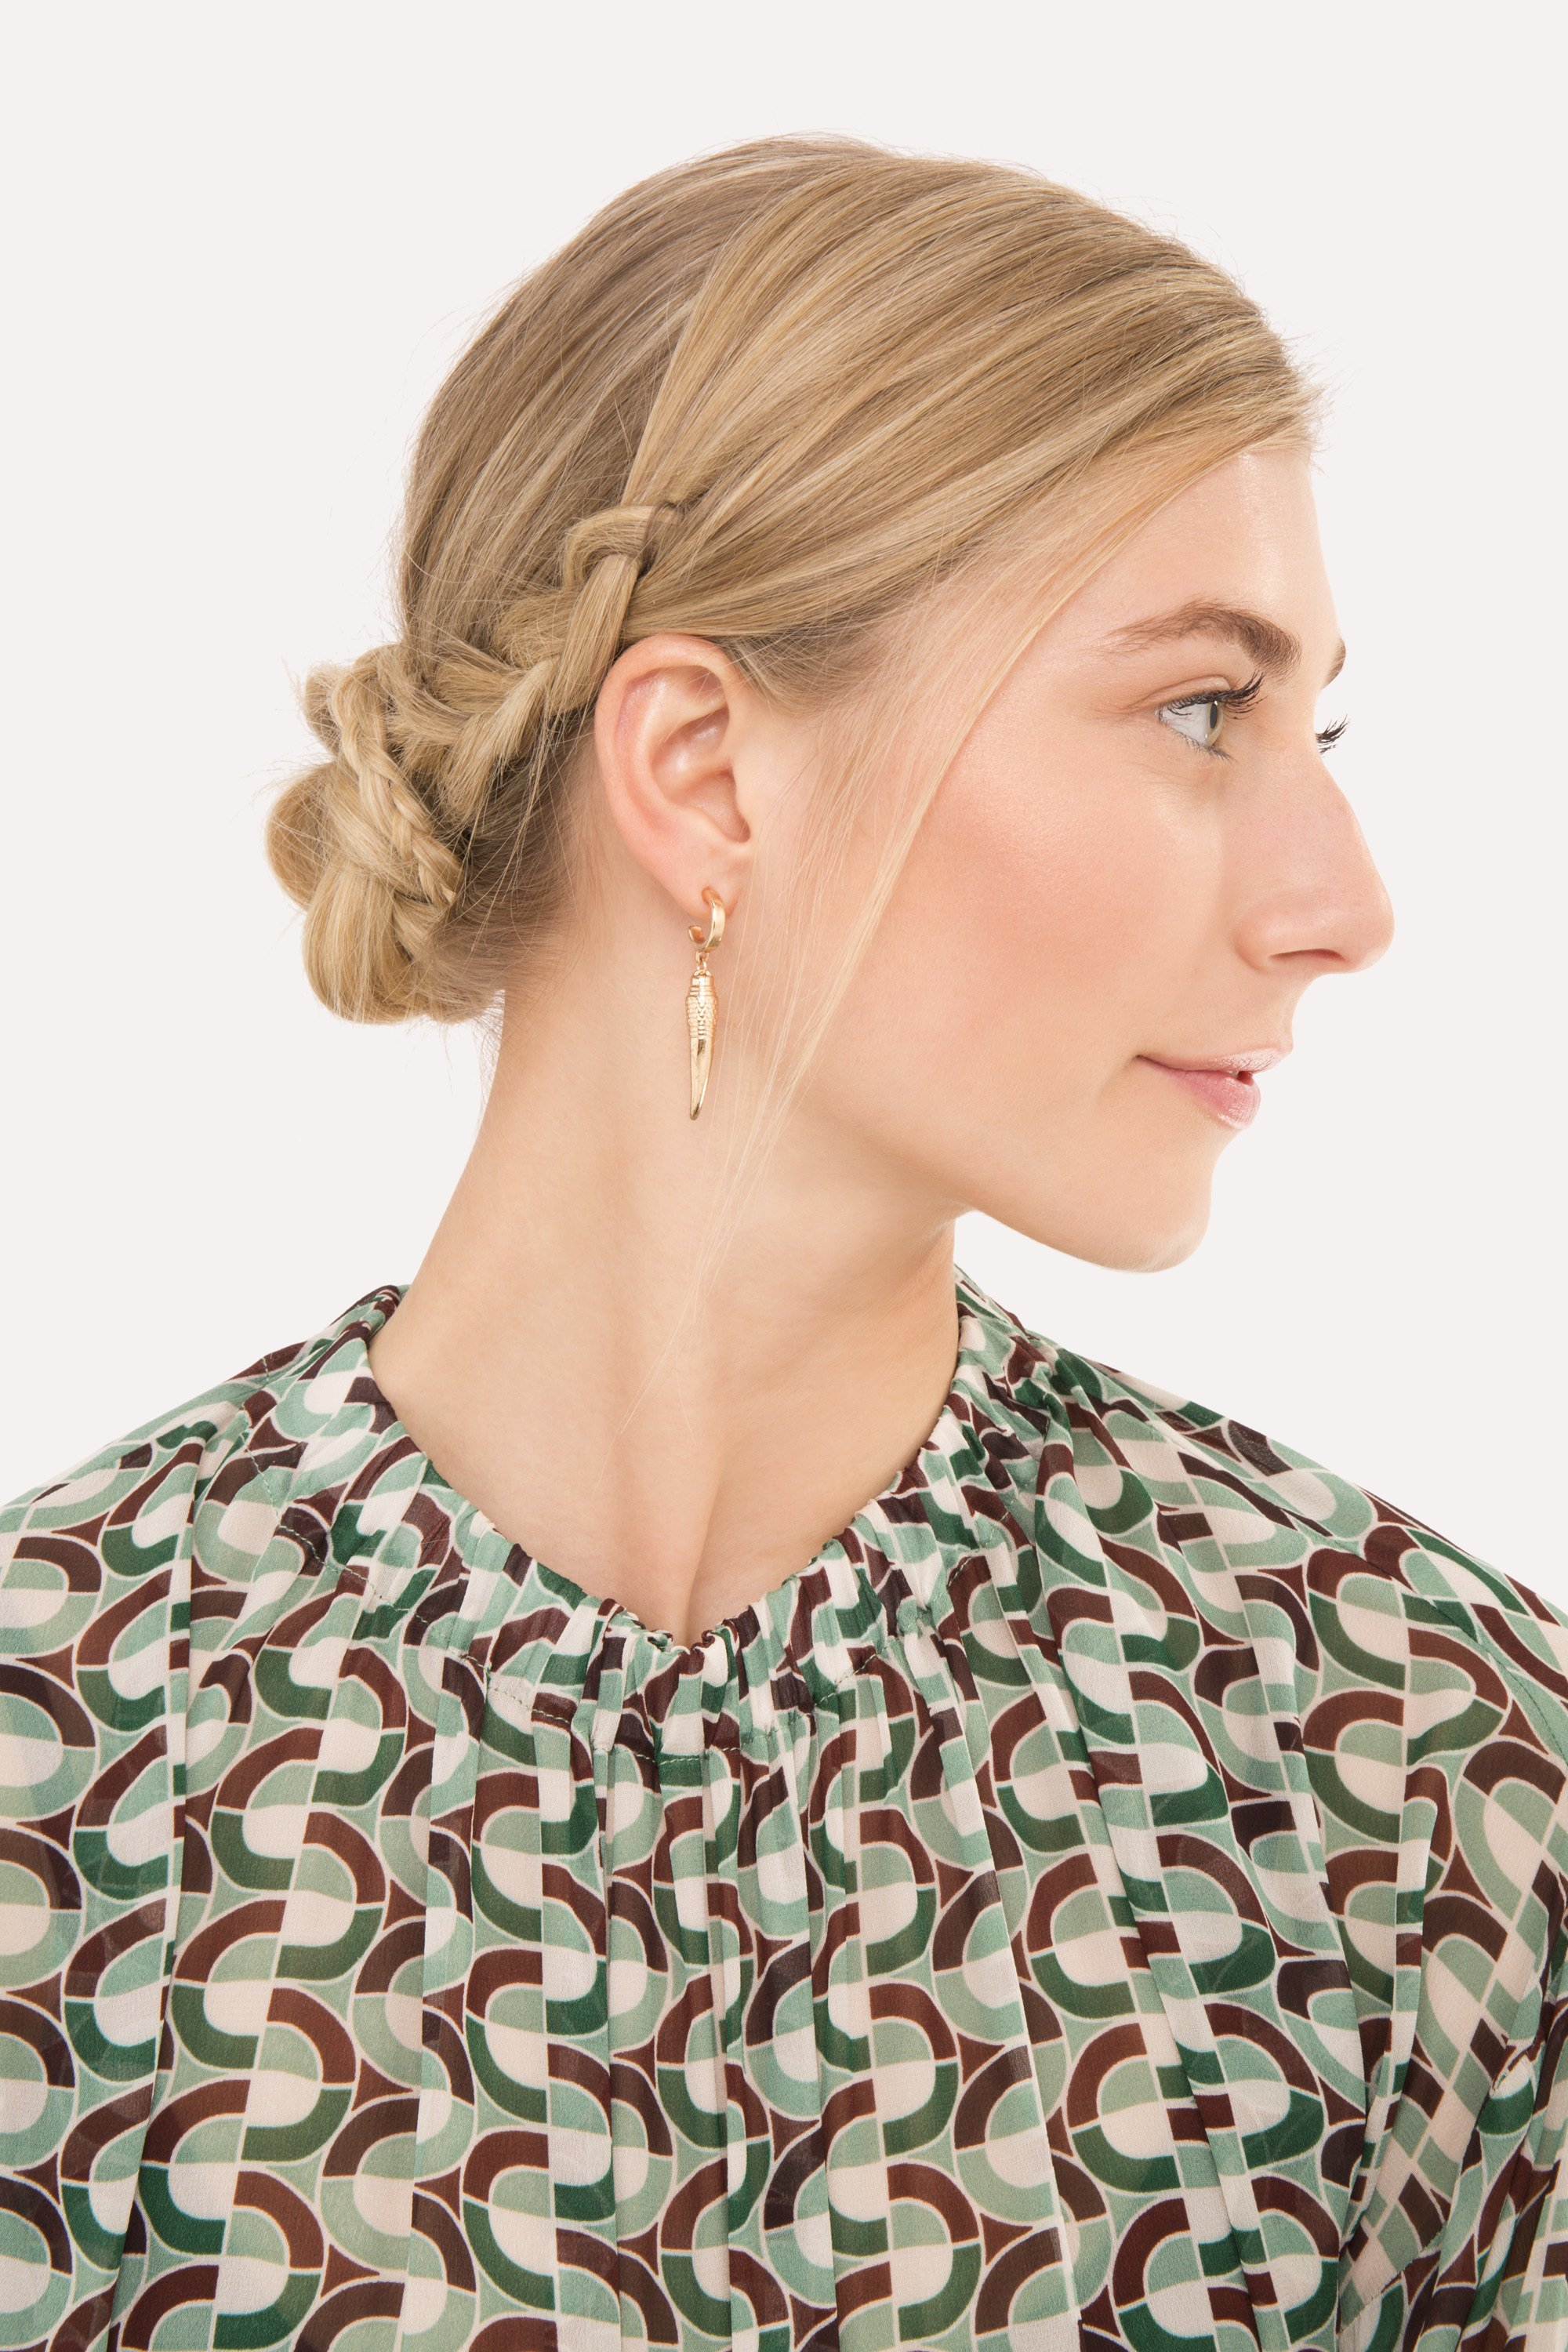 side view of model with straight blonde hair styled in a low bun with a braid detail on the side